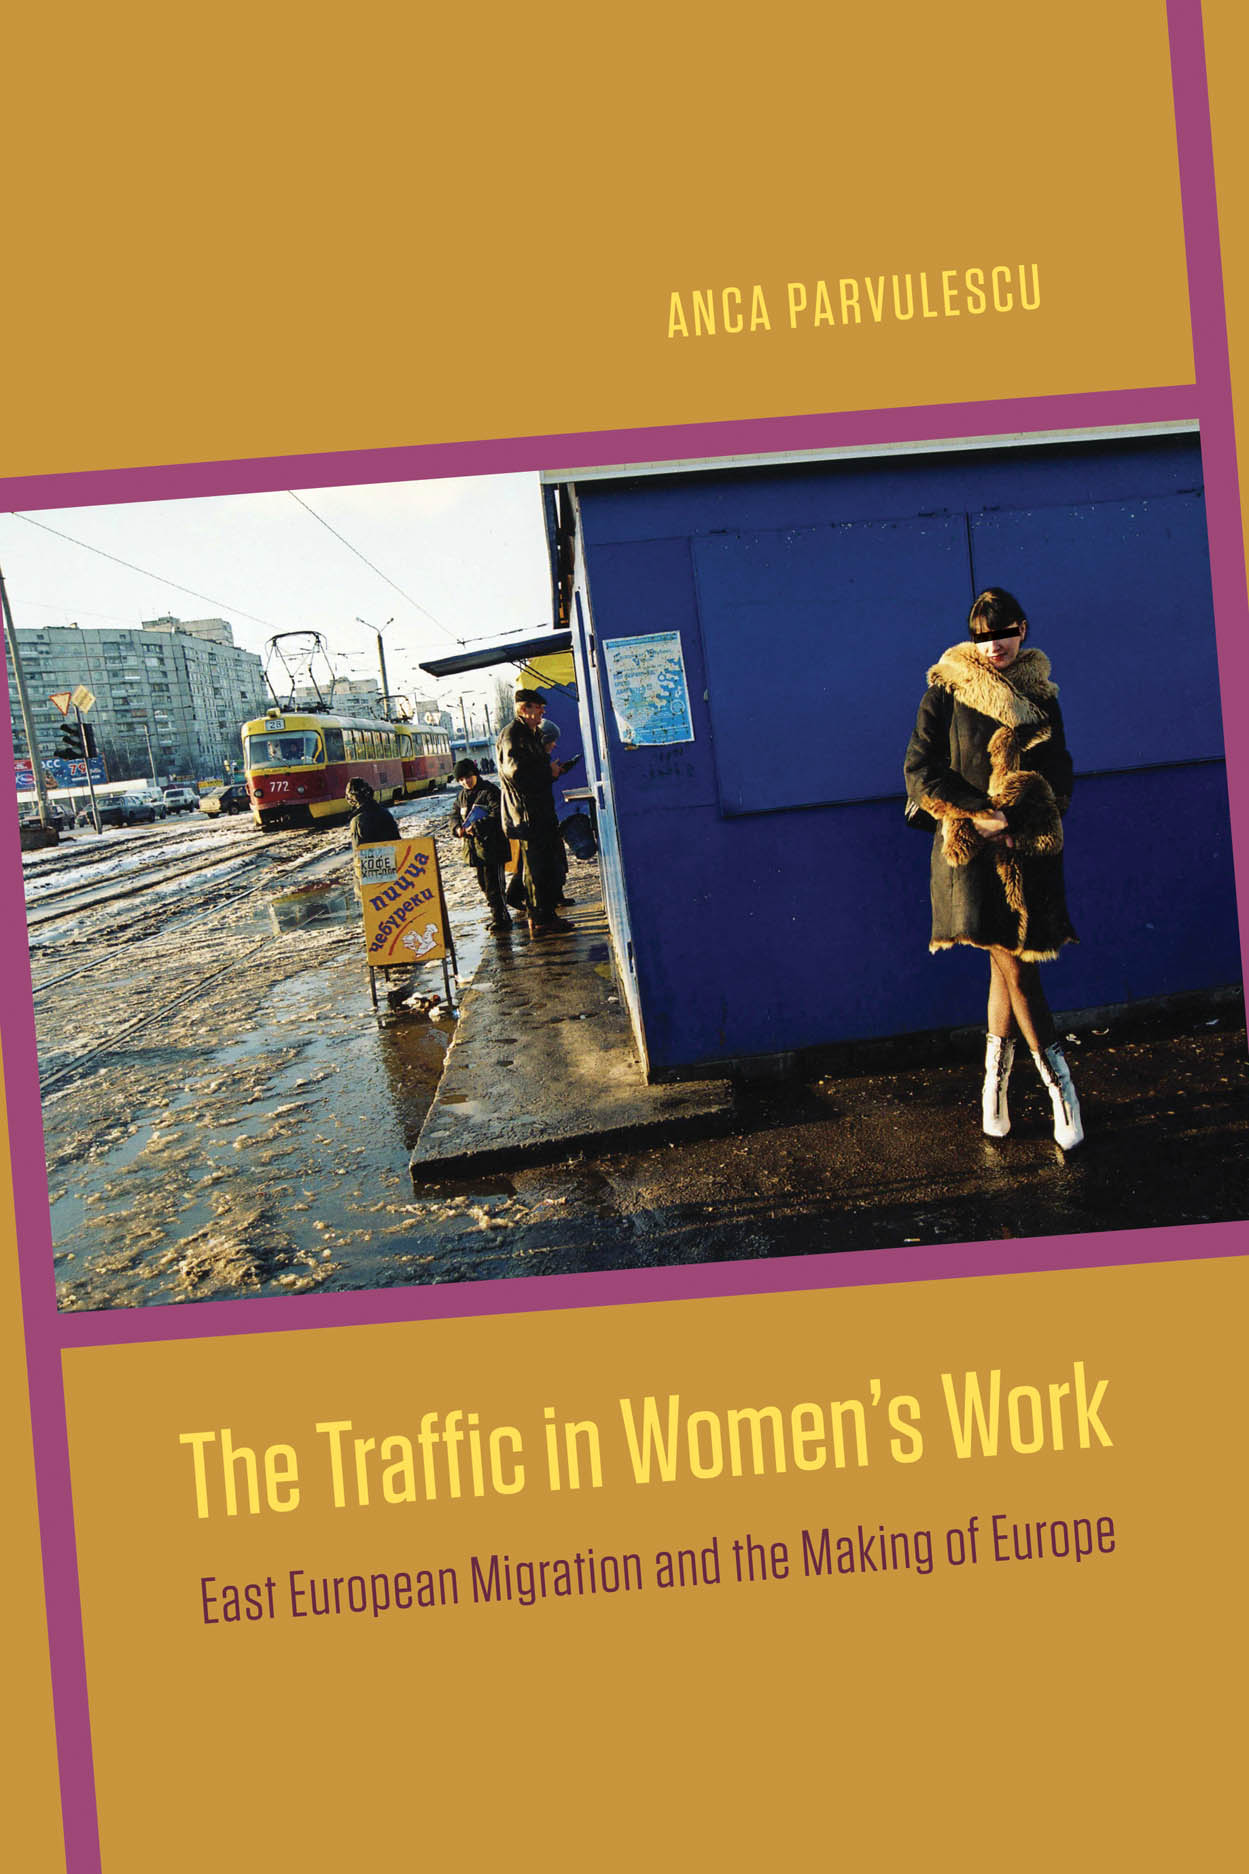 The Traffic in Women's Work: East European Migration and the Making of Europe